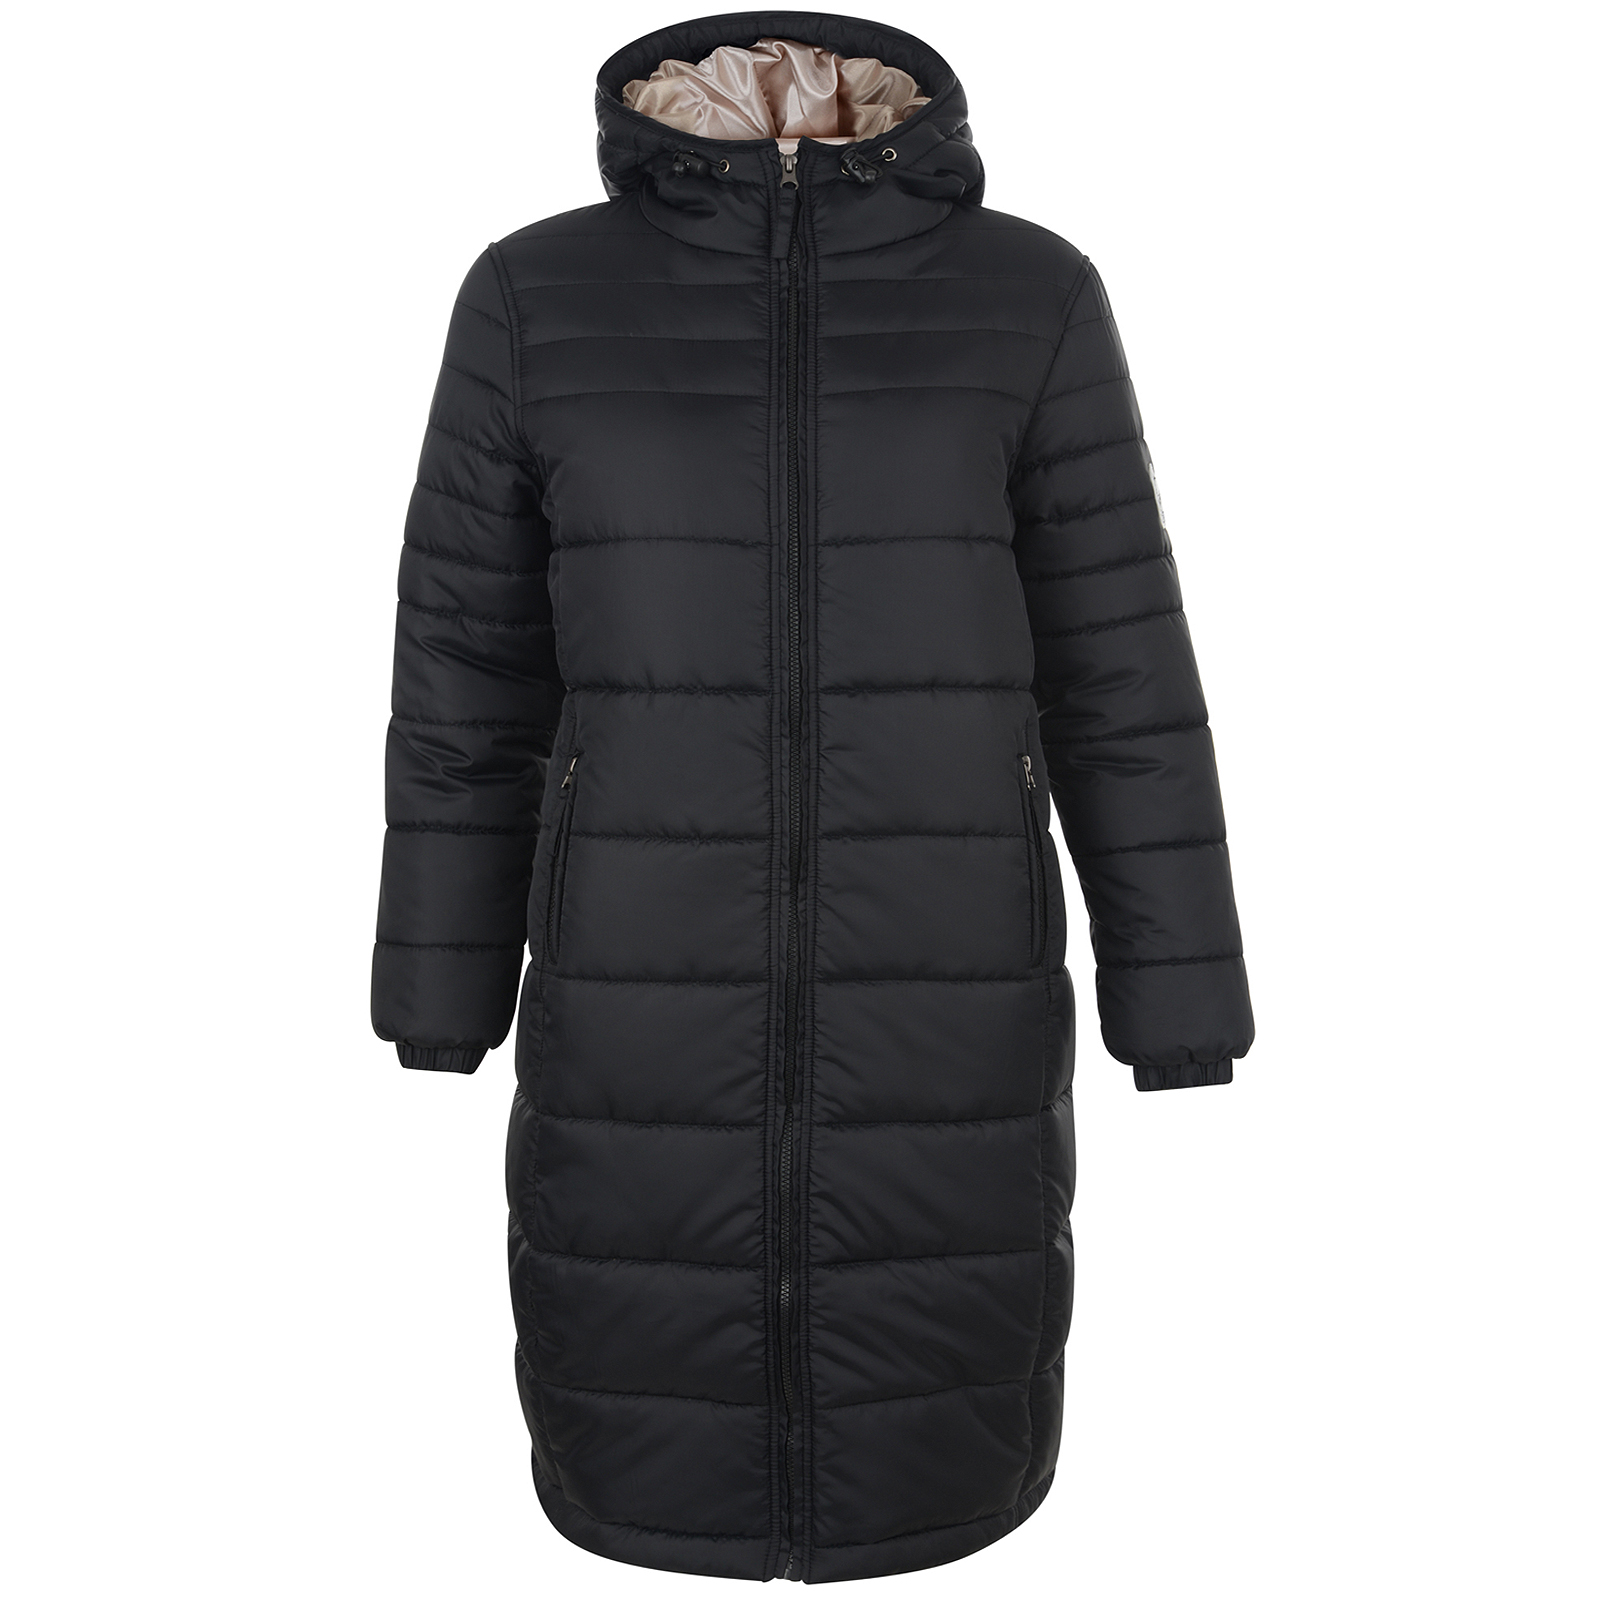 Sleeping Bags And Jackets